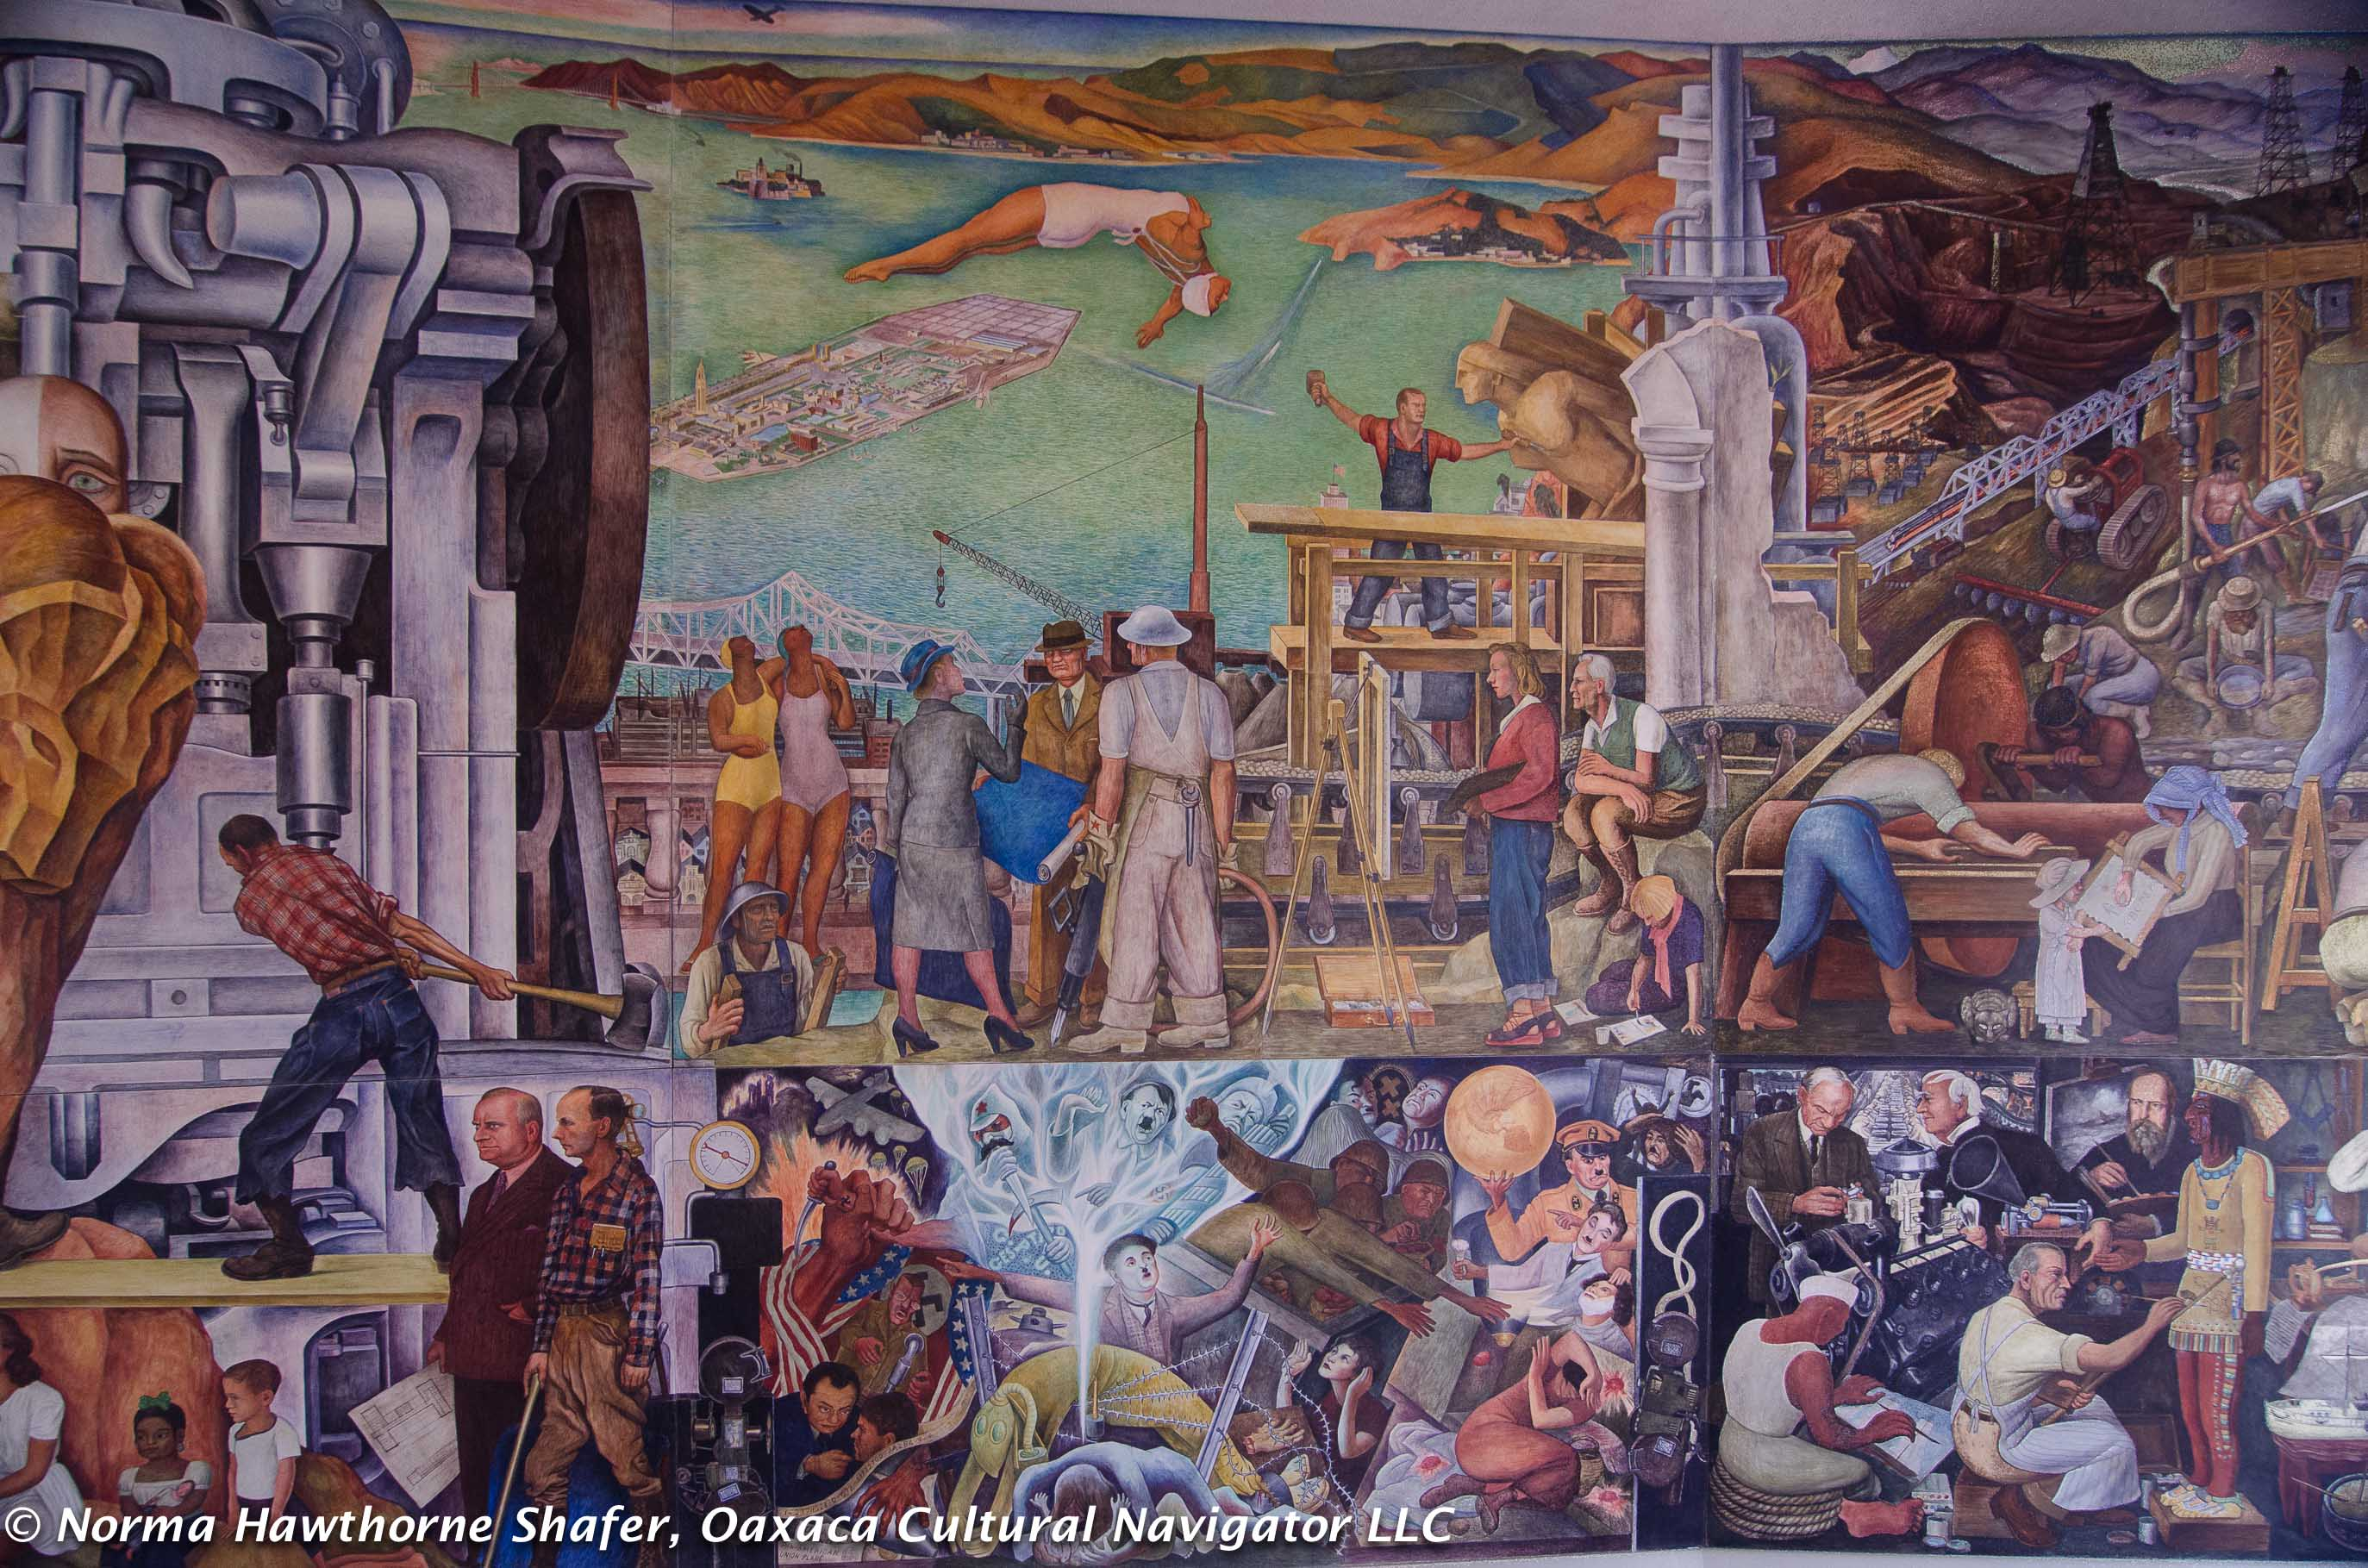 Diego rivera murals in san francisco critical guide for for Diego rivera creation mural